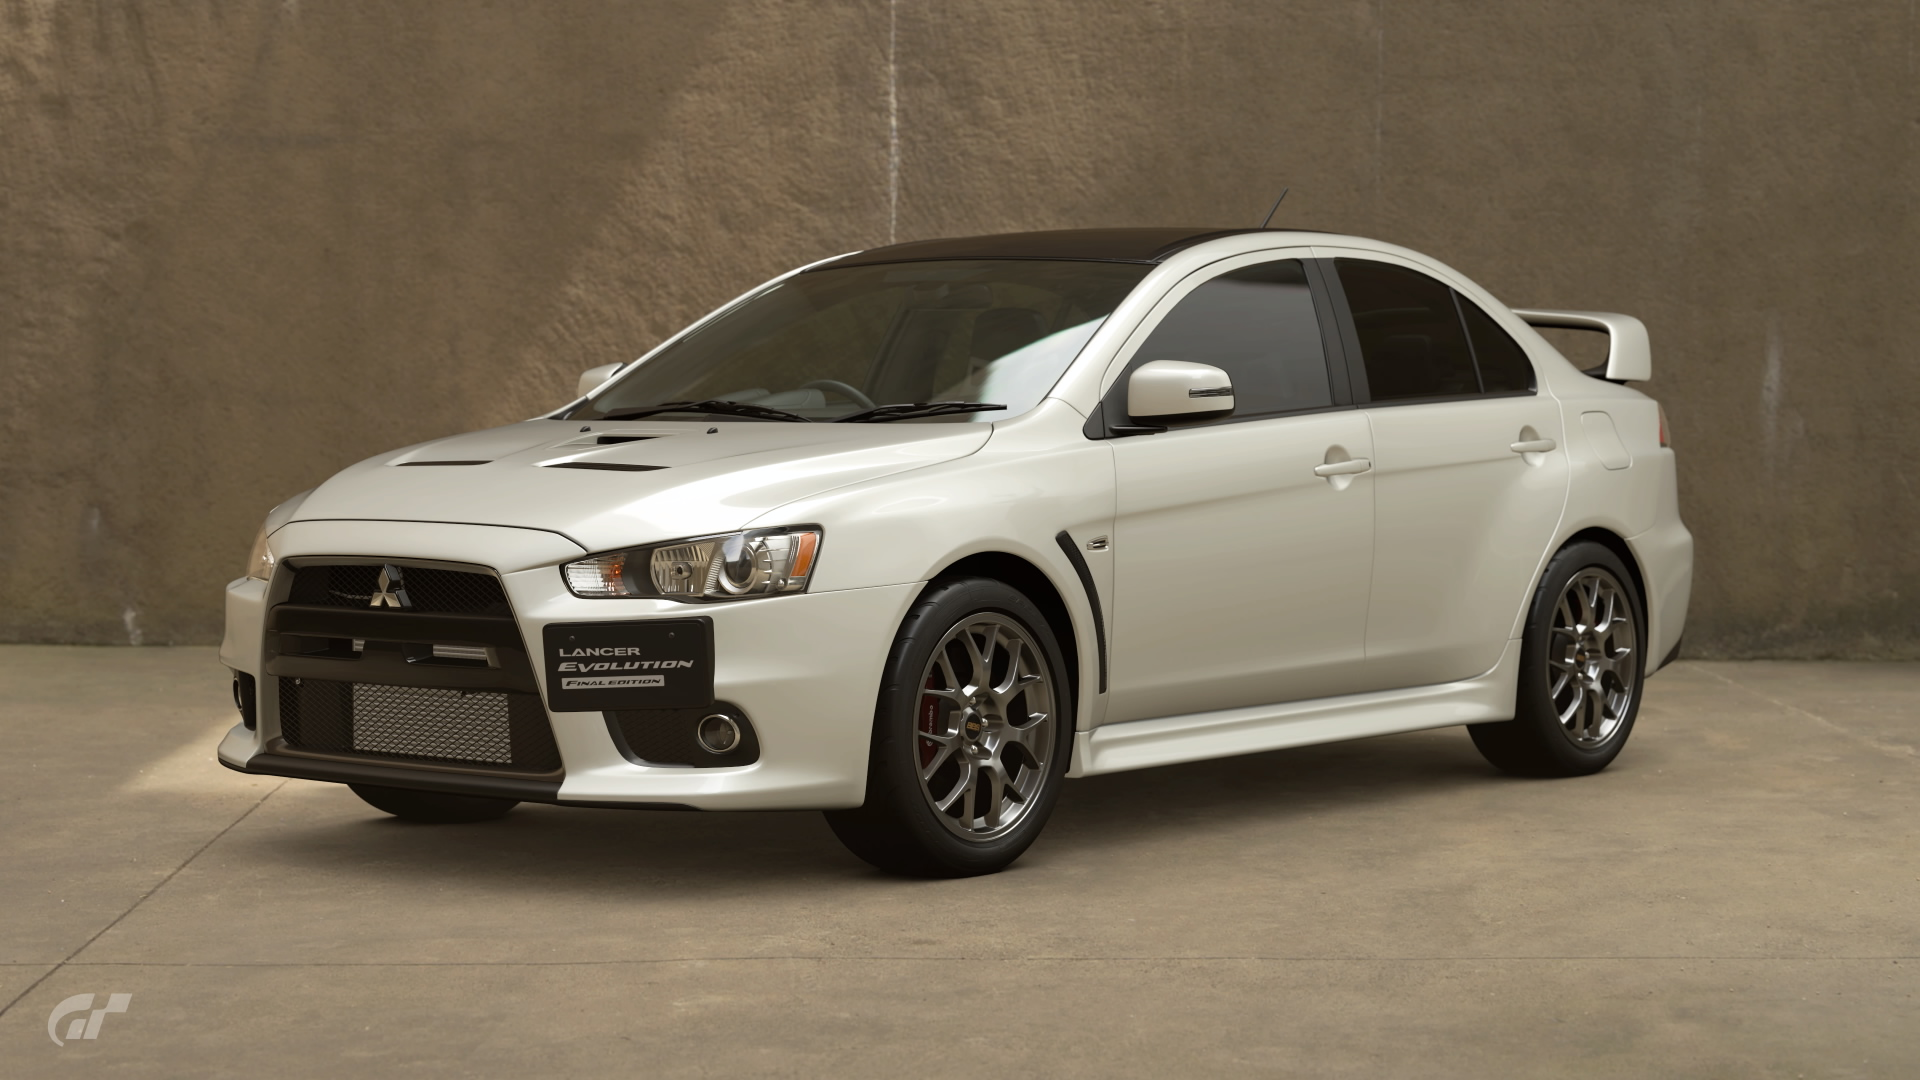 Mitsubishi Lancer Evolution Final Edition '15